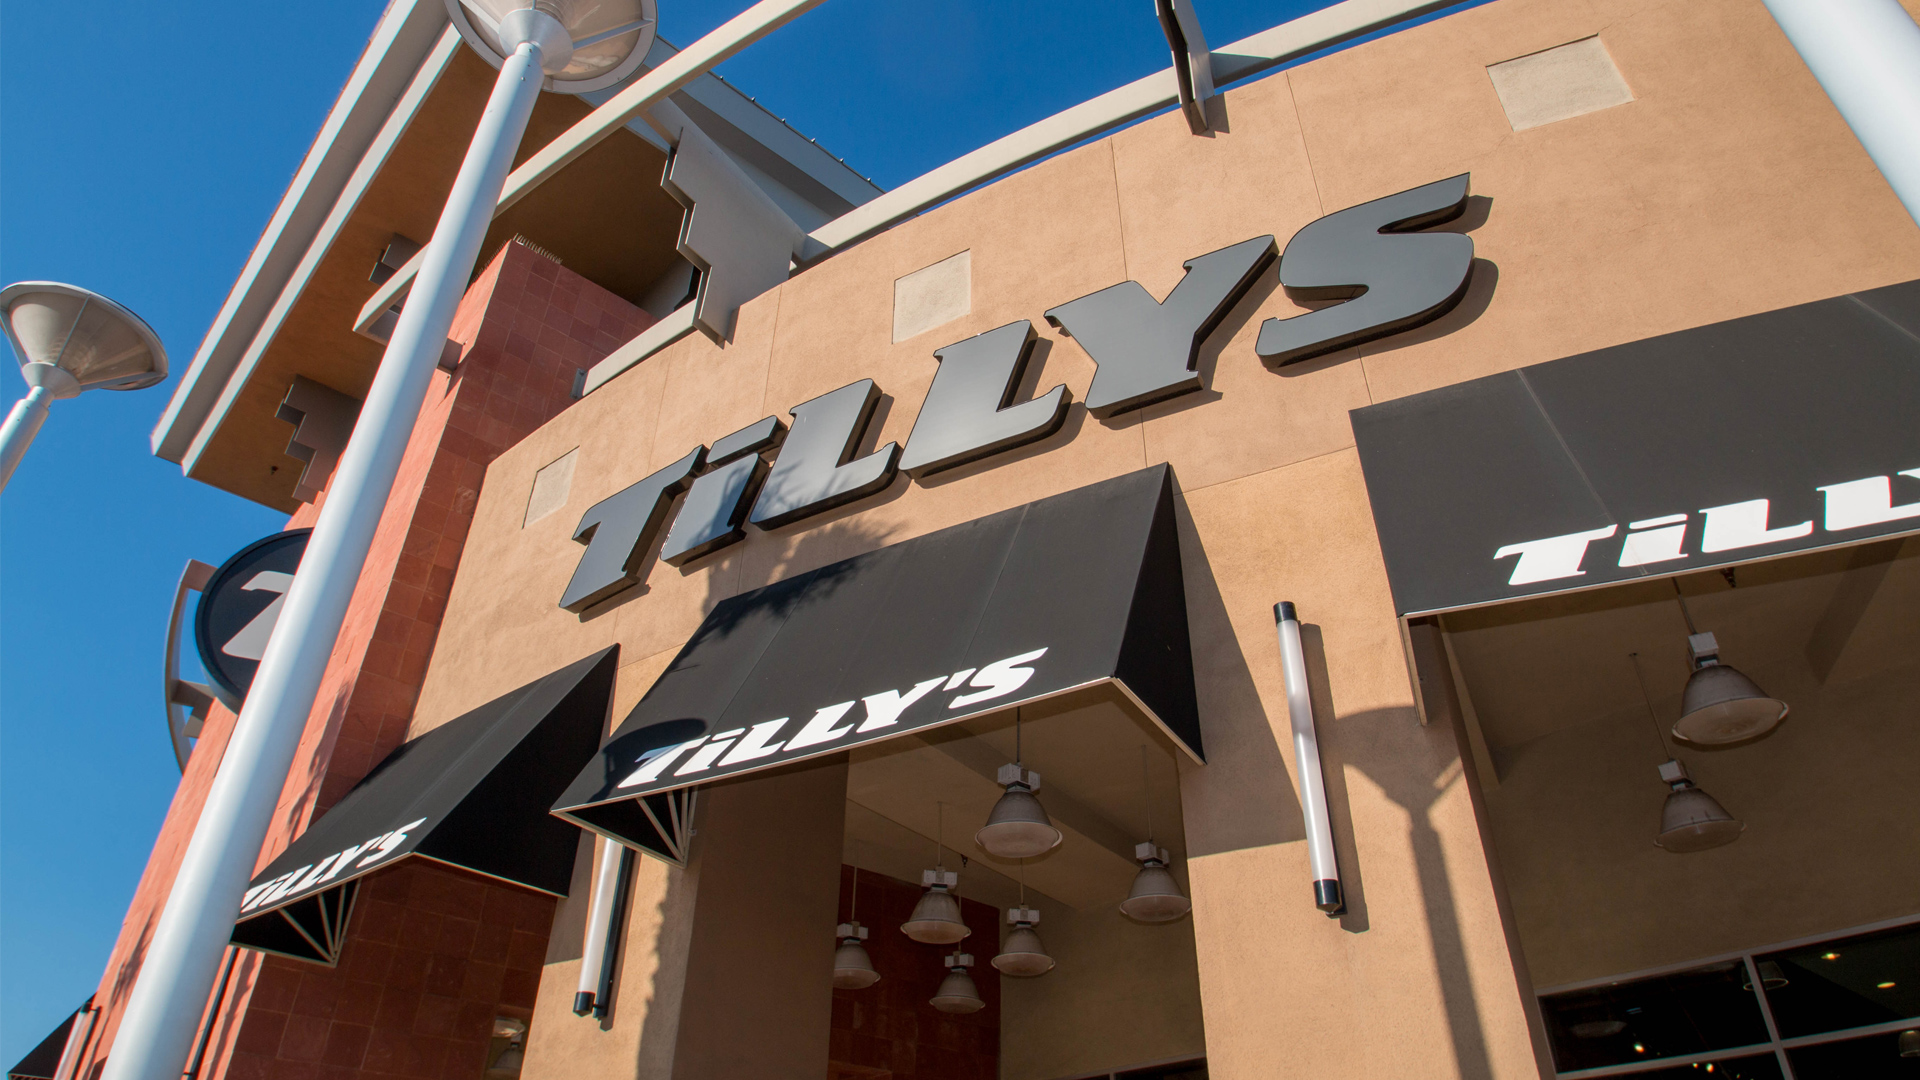 5dc6ea63f79 Black Commercial Awnings Installed at Tilly s Clothing Store by Metro  Awnings of Las Vegas